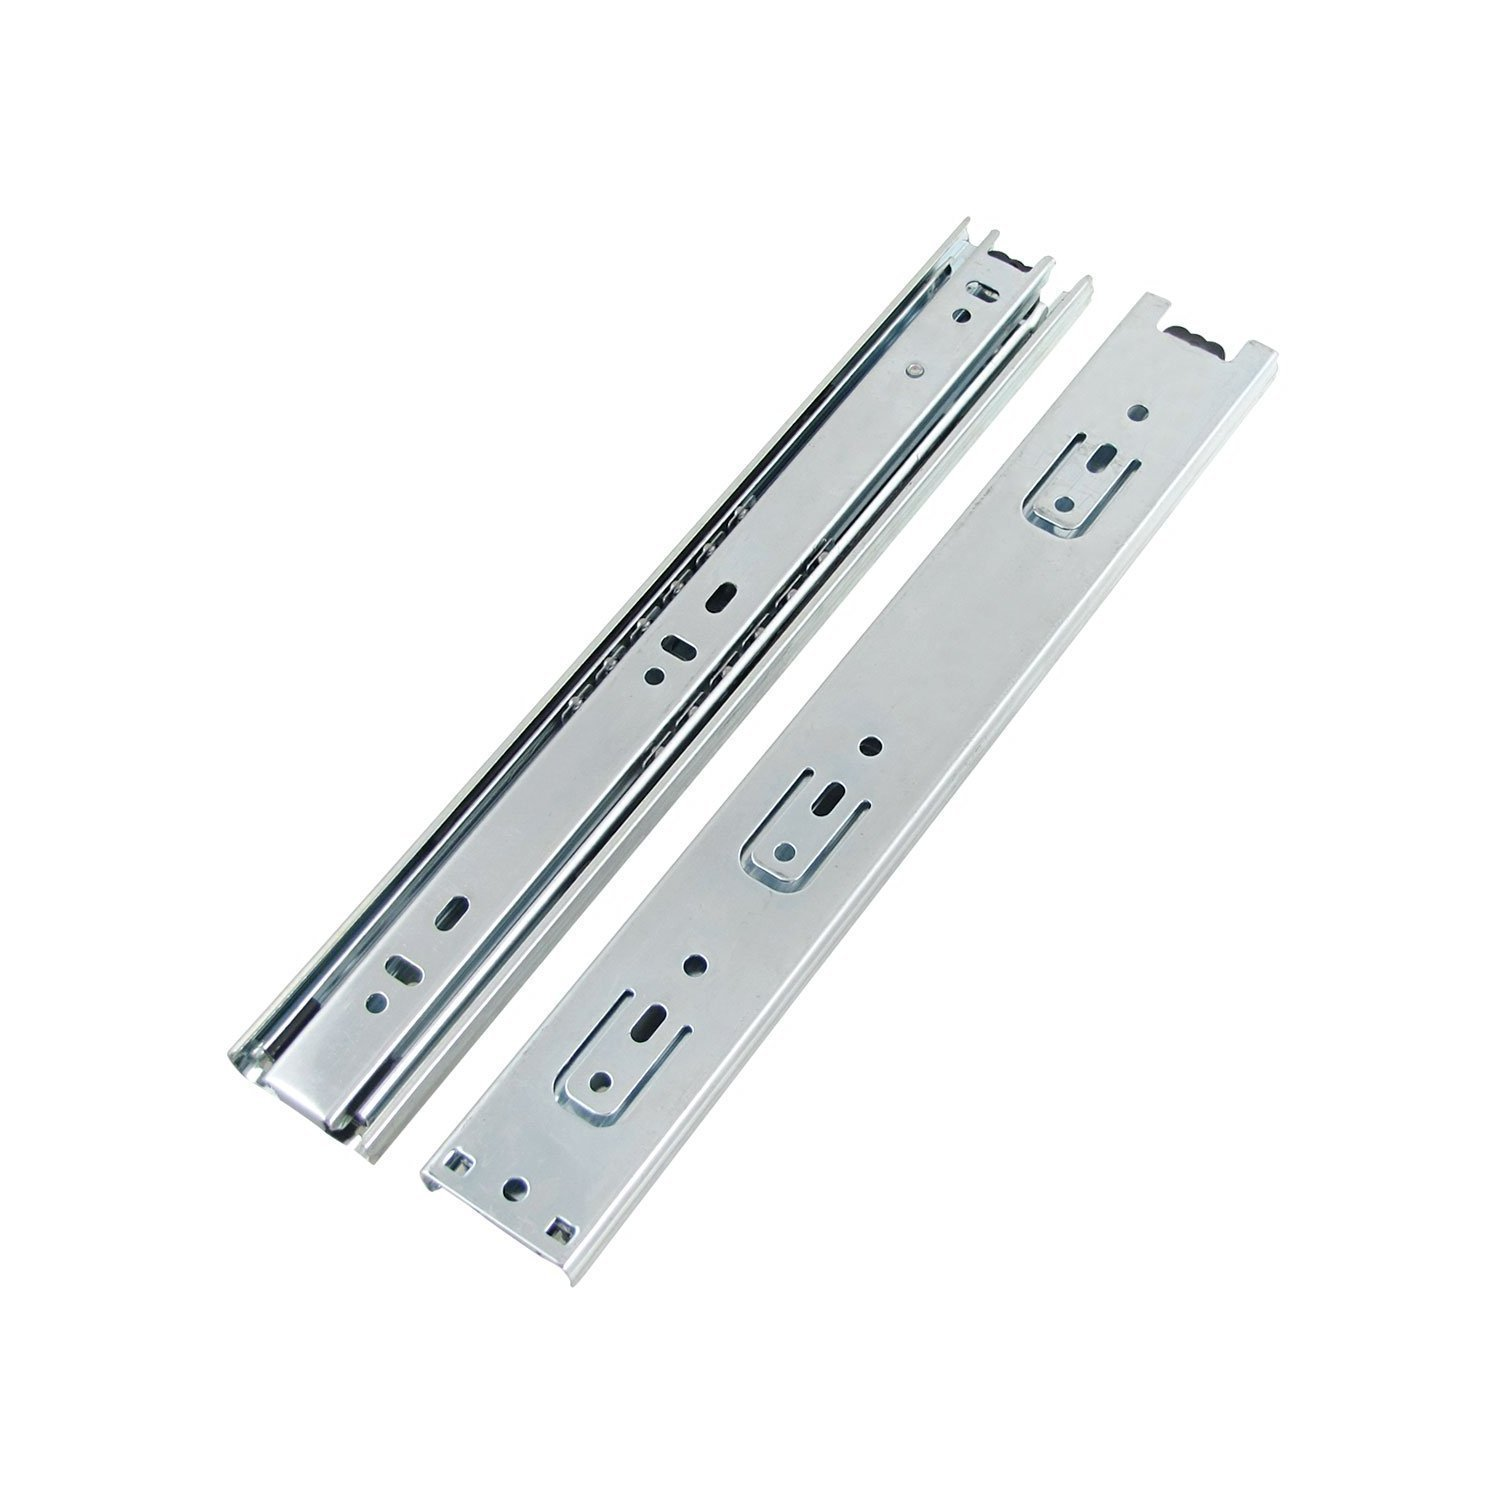 DJM Direct 2pairs Double Fully Extension Ball Bearing Drawer Slide Runners Heavy Duty (24' 600mm Closed - 1220mm Open) (2 pairs)